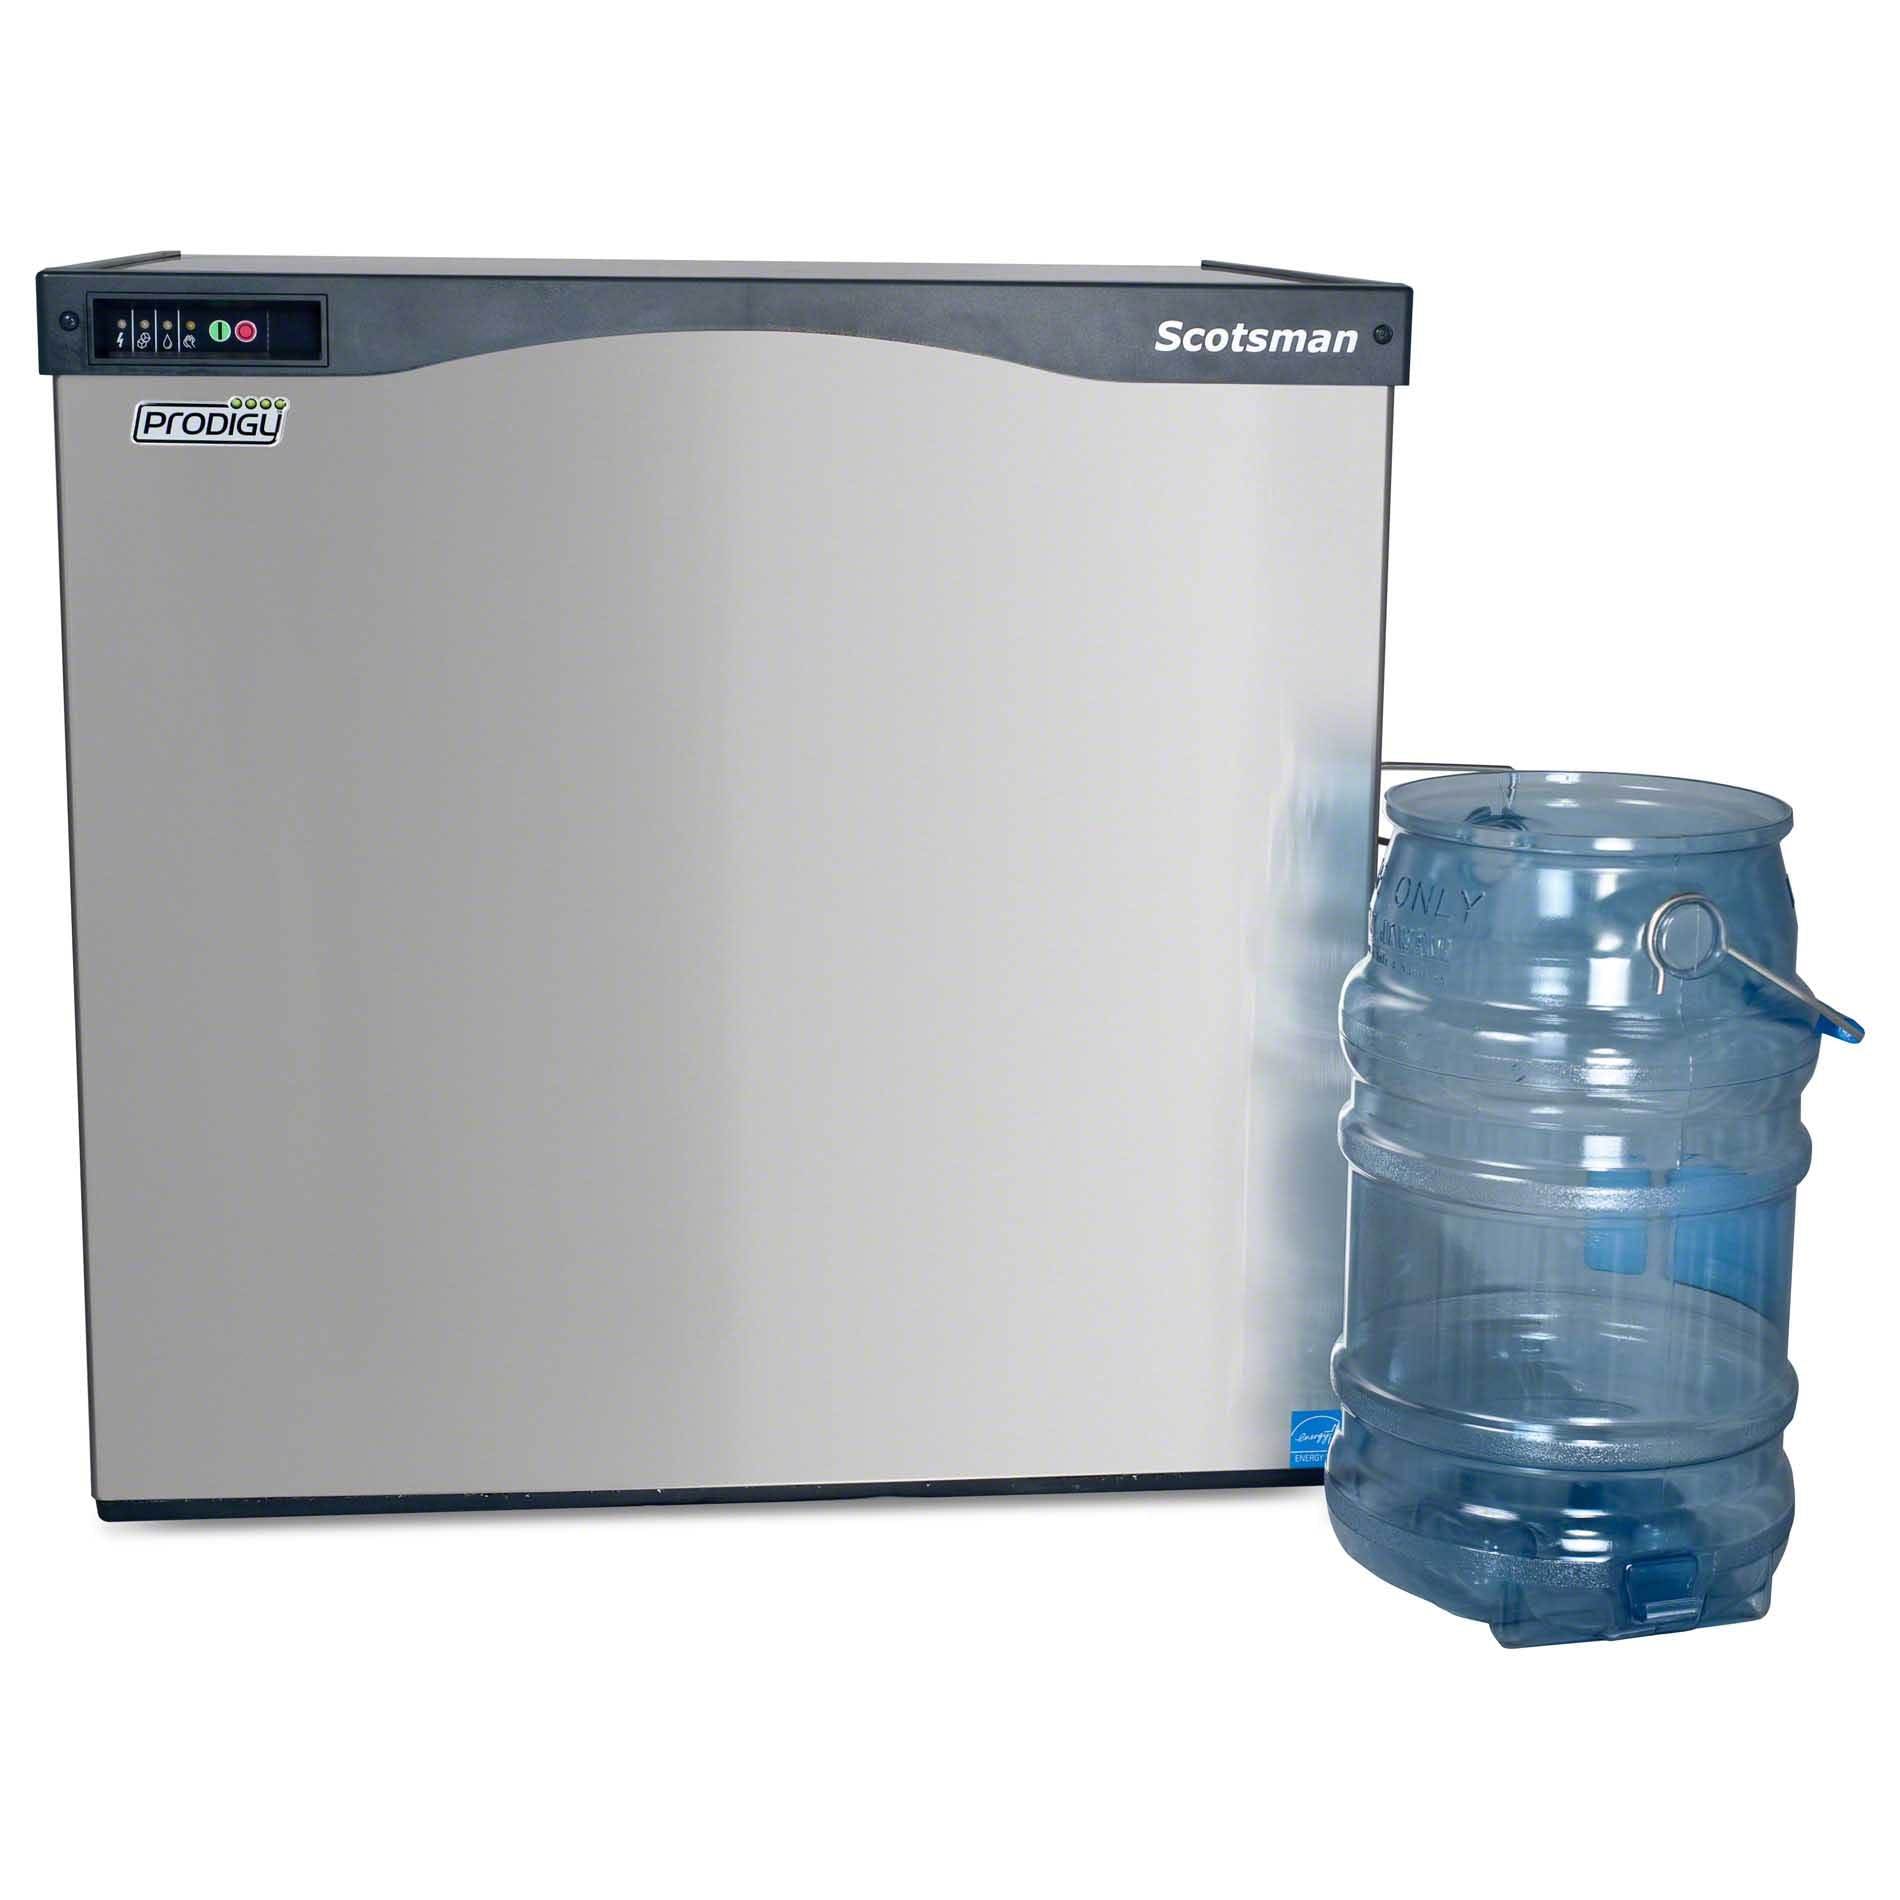 Scotsman - C1030MA-32A 1077 lb Full Size Cube Ice Machine - Prodigy Series Ice machine sold by Food Service Warehouse